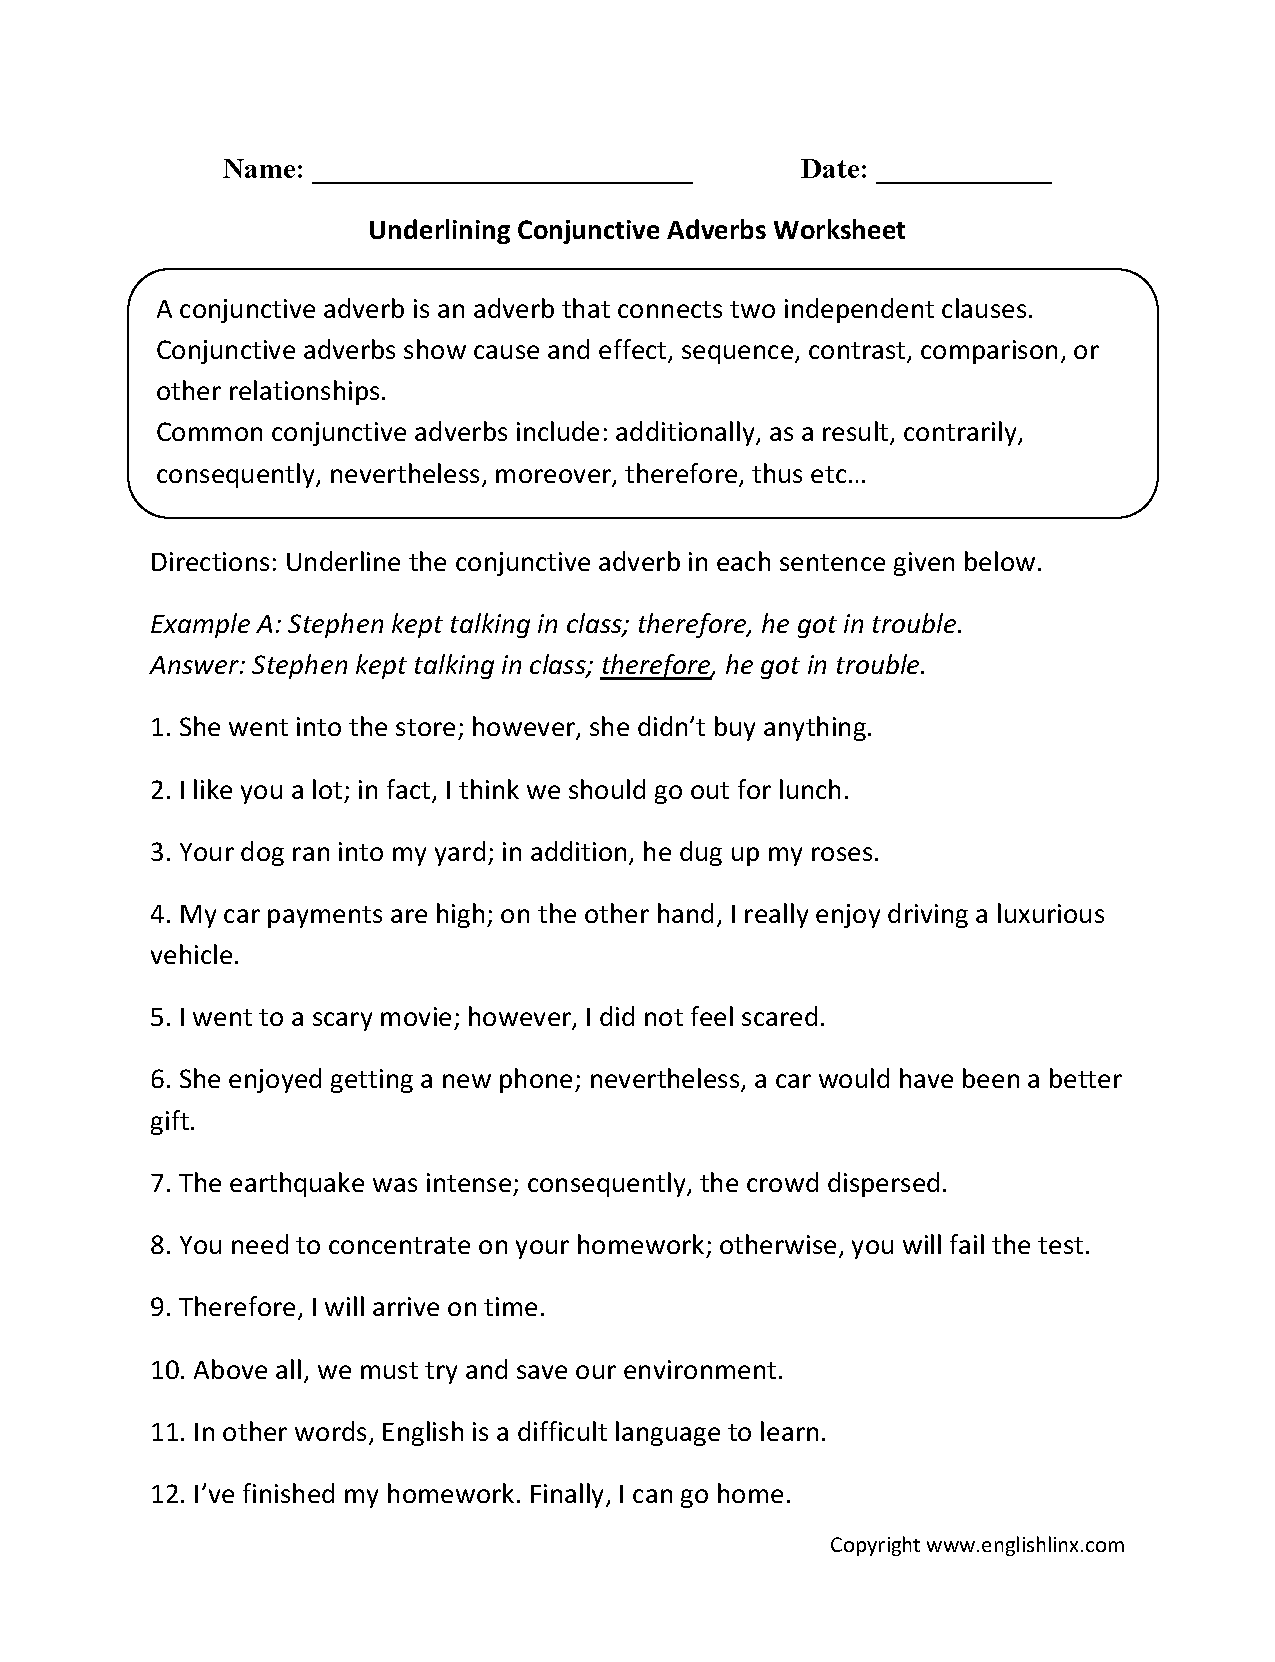 Weirdmailus  Splendid Englishlinxcom  Conjunctions Worksheets With Inspiring Worksheet With Amusing Year  Worksheets English Also Addition And Subtraction Word Problems Worksheets St Grade In Addition Spreadsheet And Worksheet And Grade  Natural Science Worksheets As Well As Worksheets For Maths Grade  Additionally Skimming And Scanning Worksheet From Englishlinxcom With Weirdmailus  Inspiring Englishlinxcom  Conjunctions Worksheets With Amusing Worksheet And Splendid Year  Worksheets English Also Addition And Subtraction Word Problems Worksheets St Grade In Addition Spreadsheet And Worksheet From Englishlinxcom